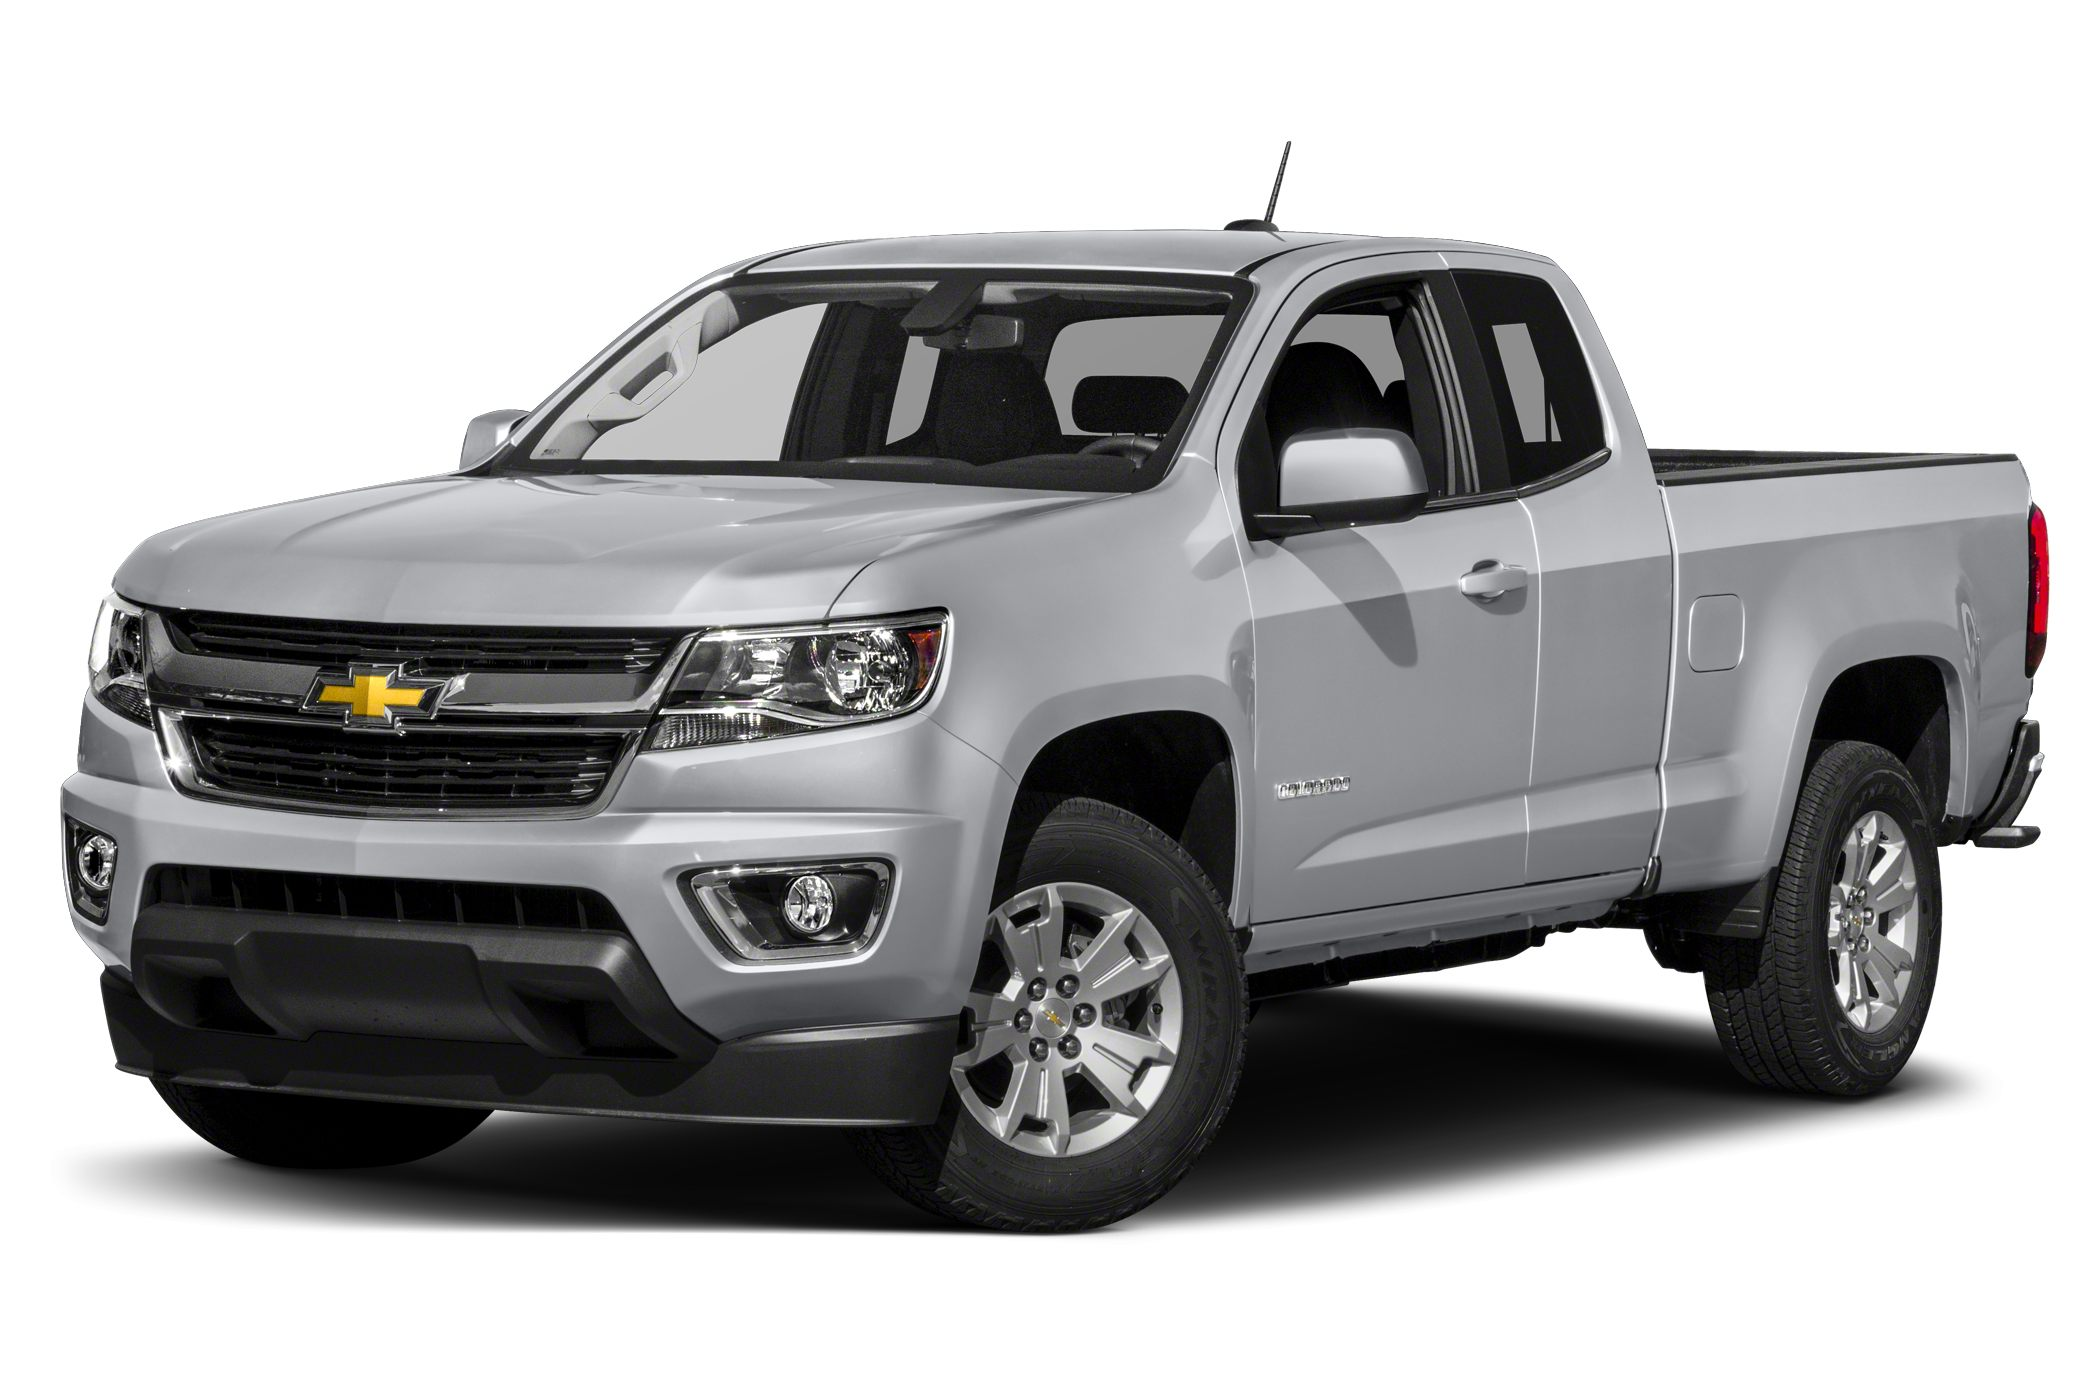 2018 Chevrolet Colorado LT Satin Steel Metallic 2018 Chevrolet Colorado LT RWD 8-Speed Automatic V